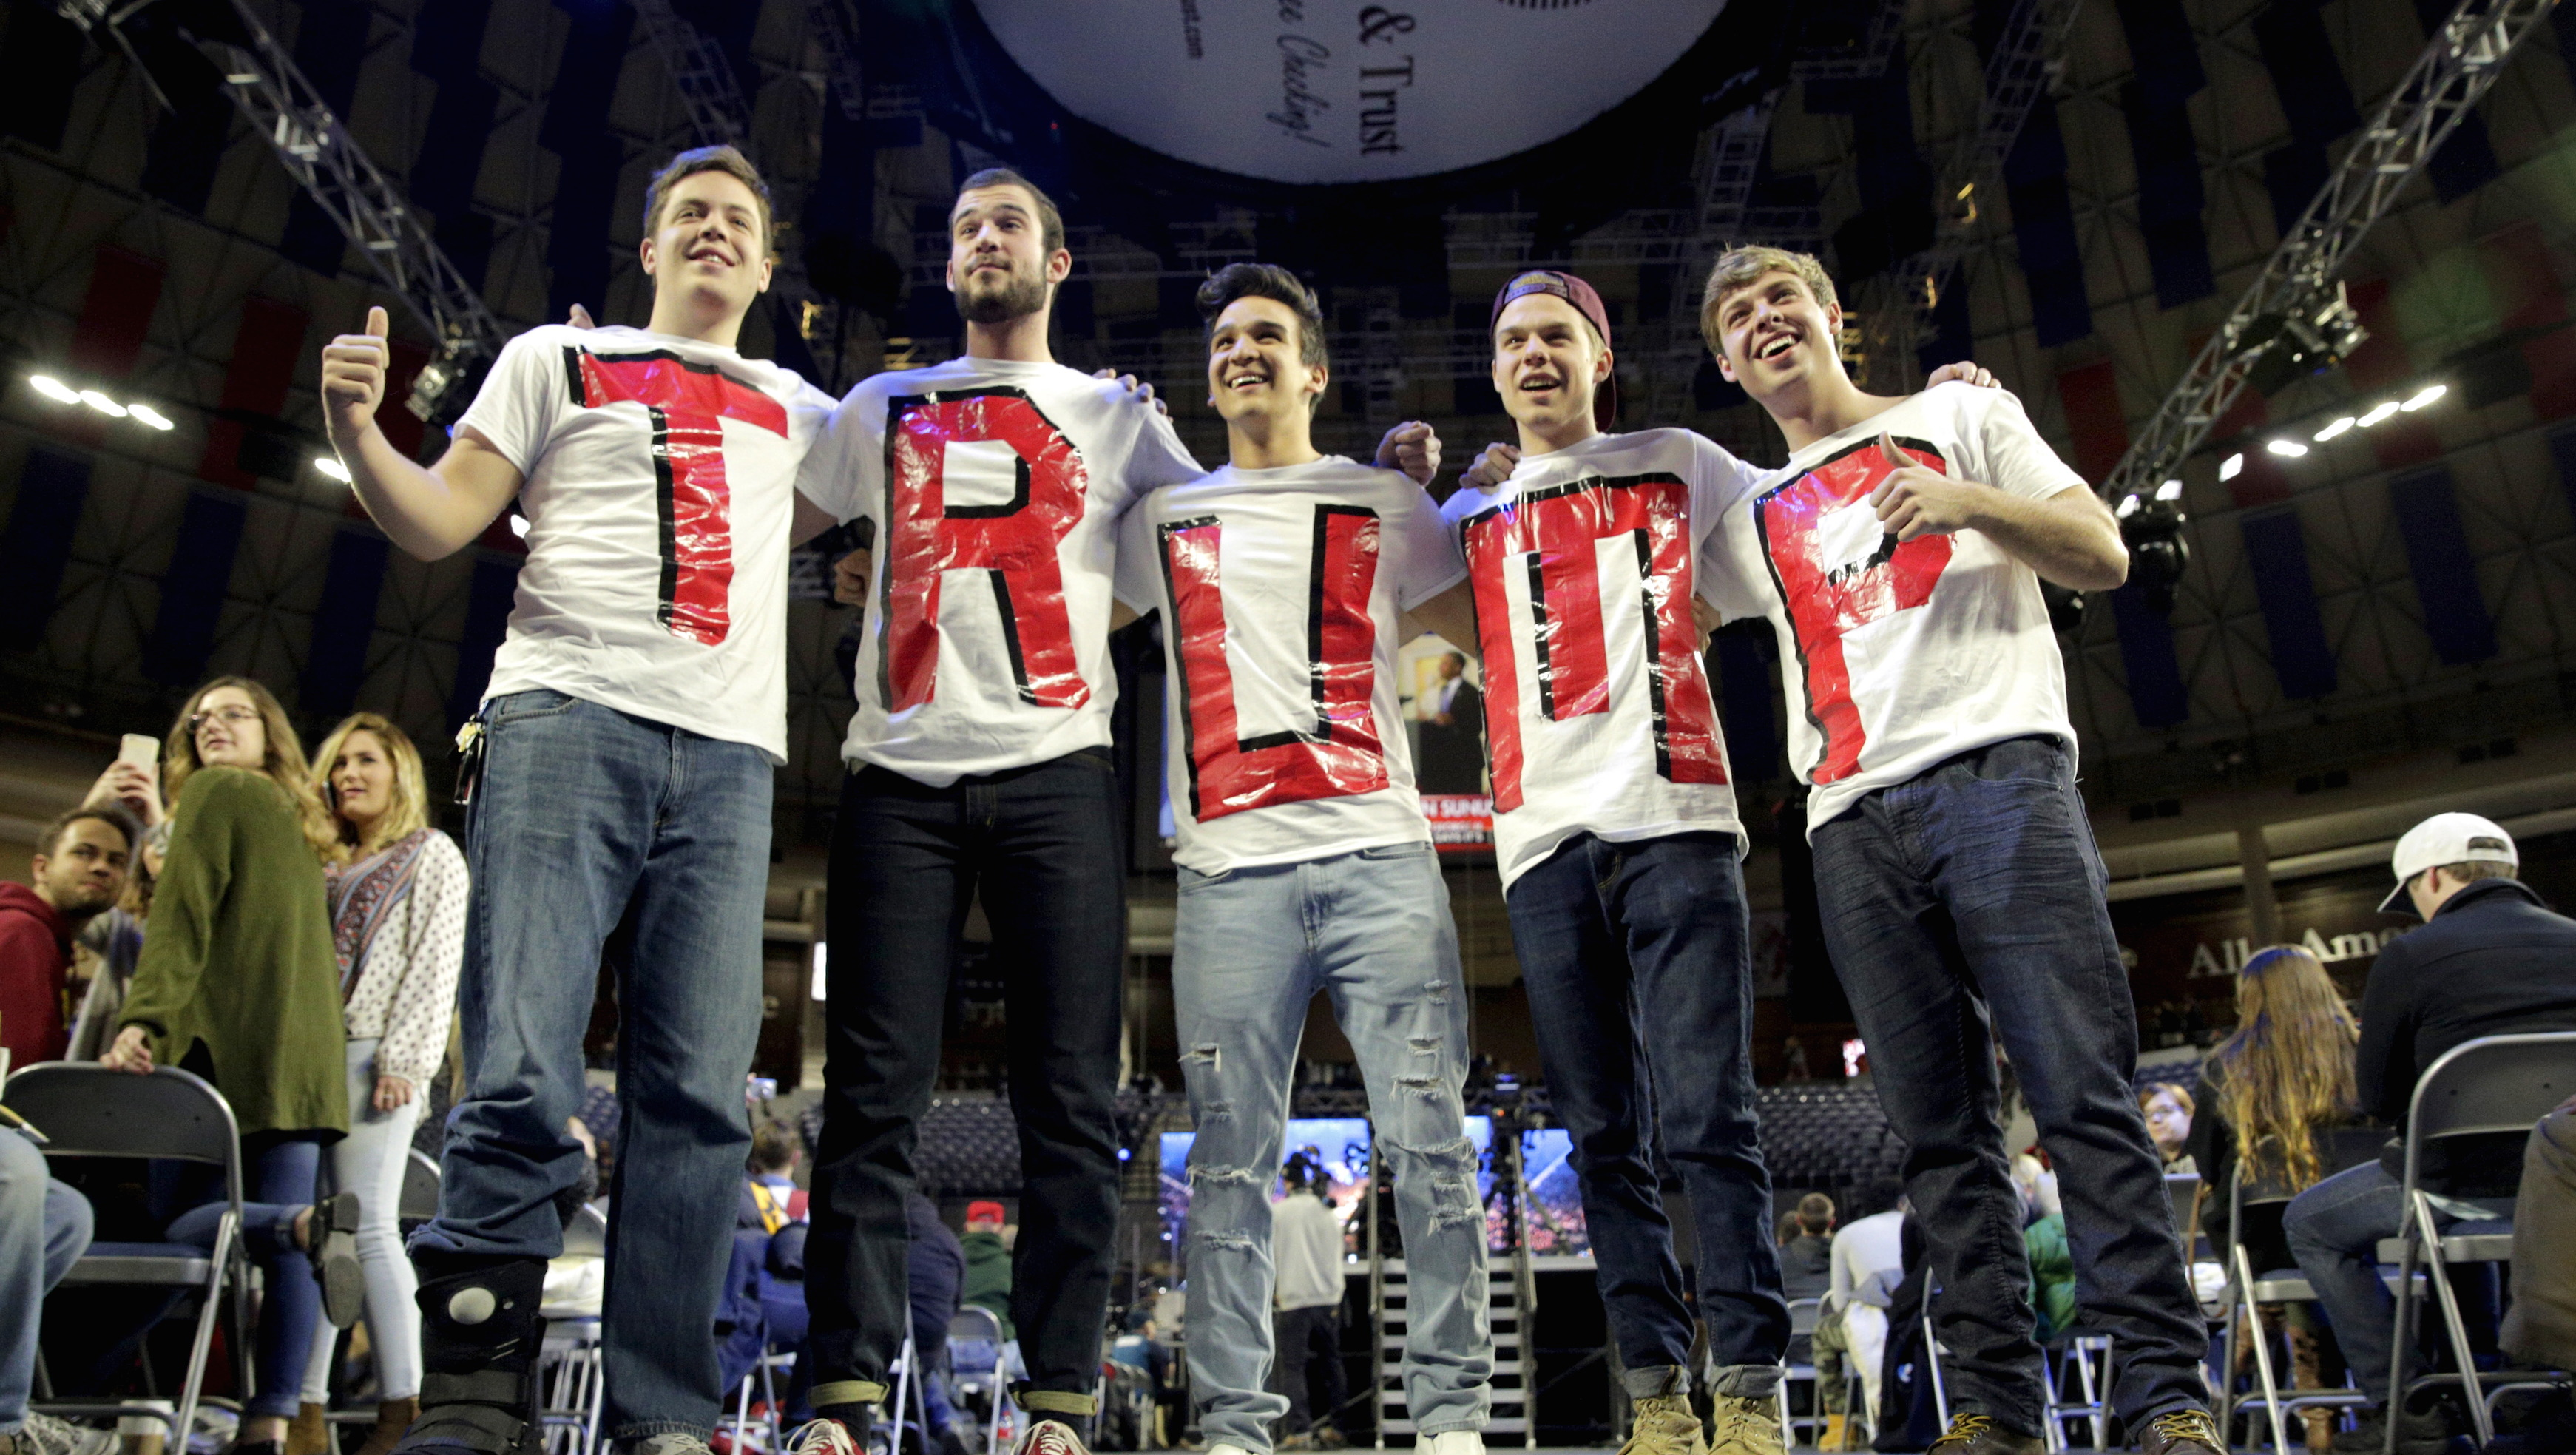 Liberty University students and supporters of Republican presidential candidate Donald Trump wear letters spelling his name before his speech at Liberty University in Lynchburg, Virginia, January 18, 2016.  REUTERS/Joshua Roberts - RTX22XPO